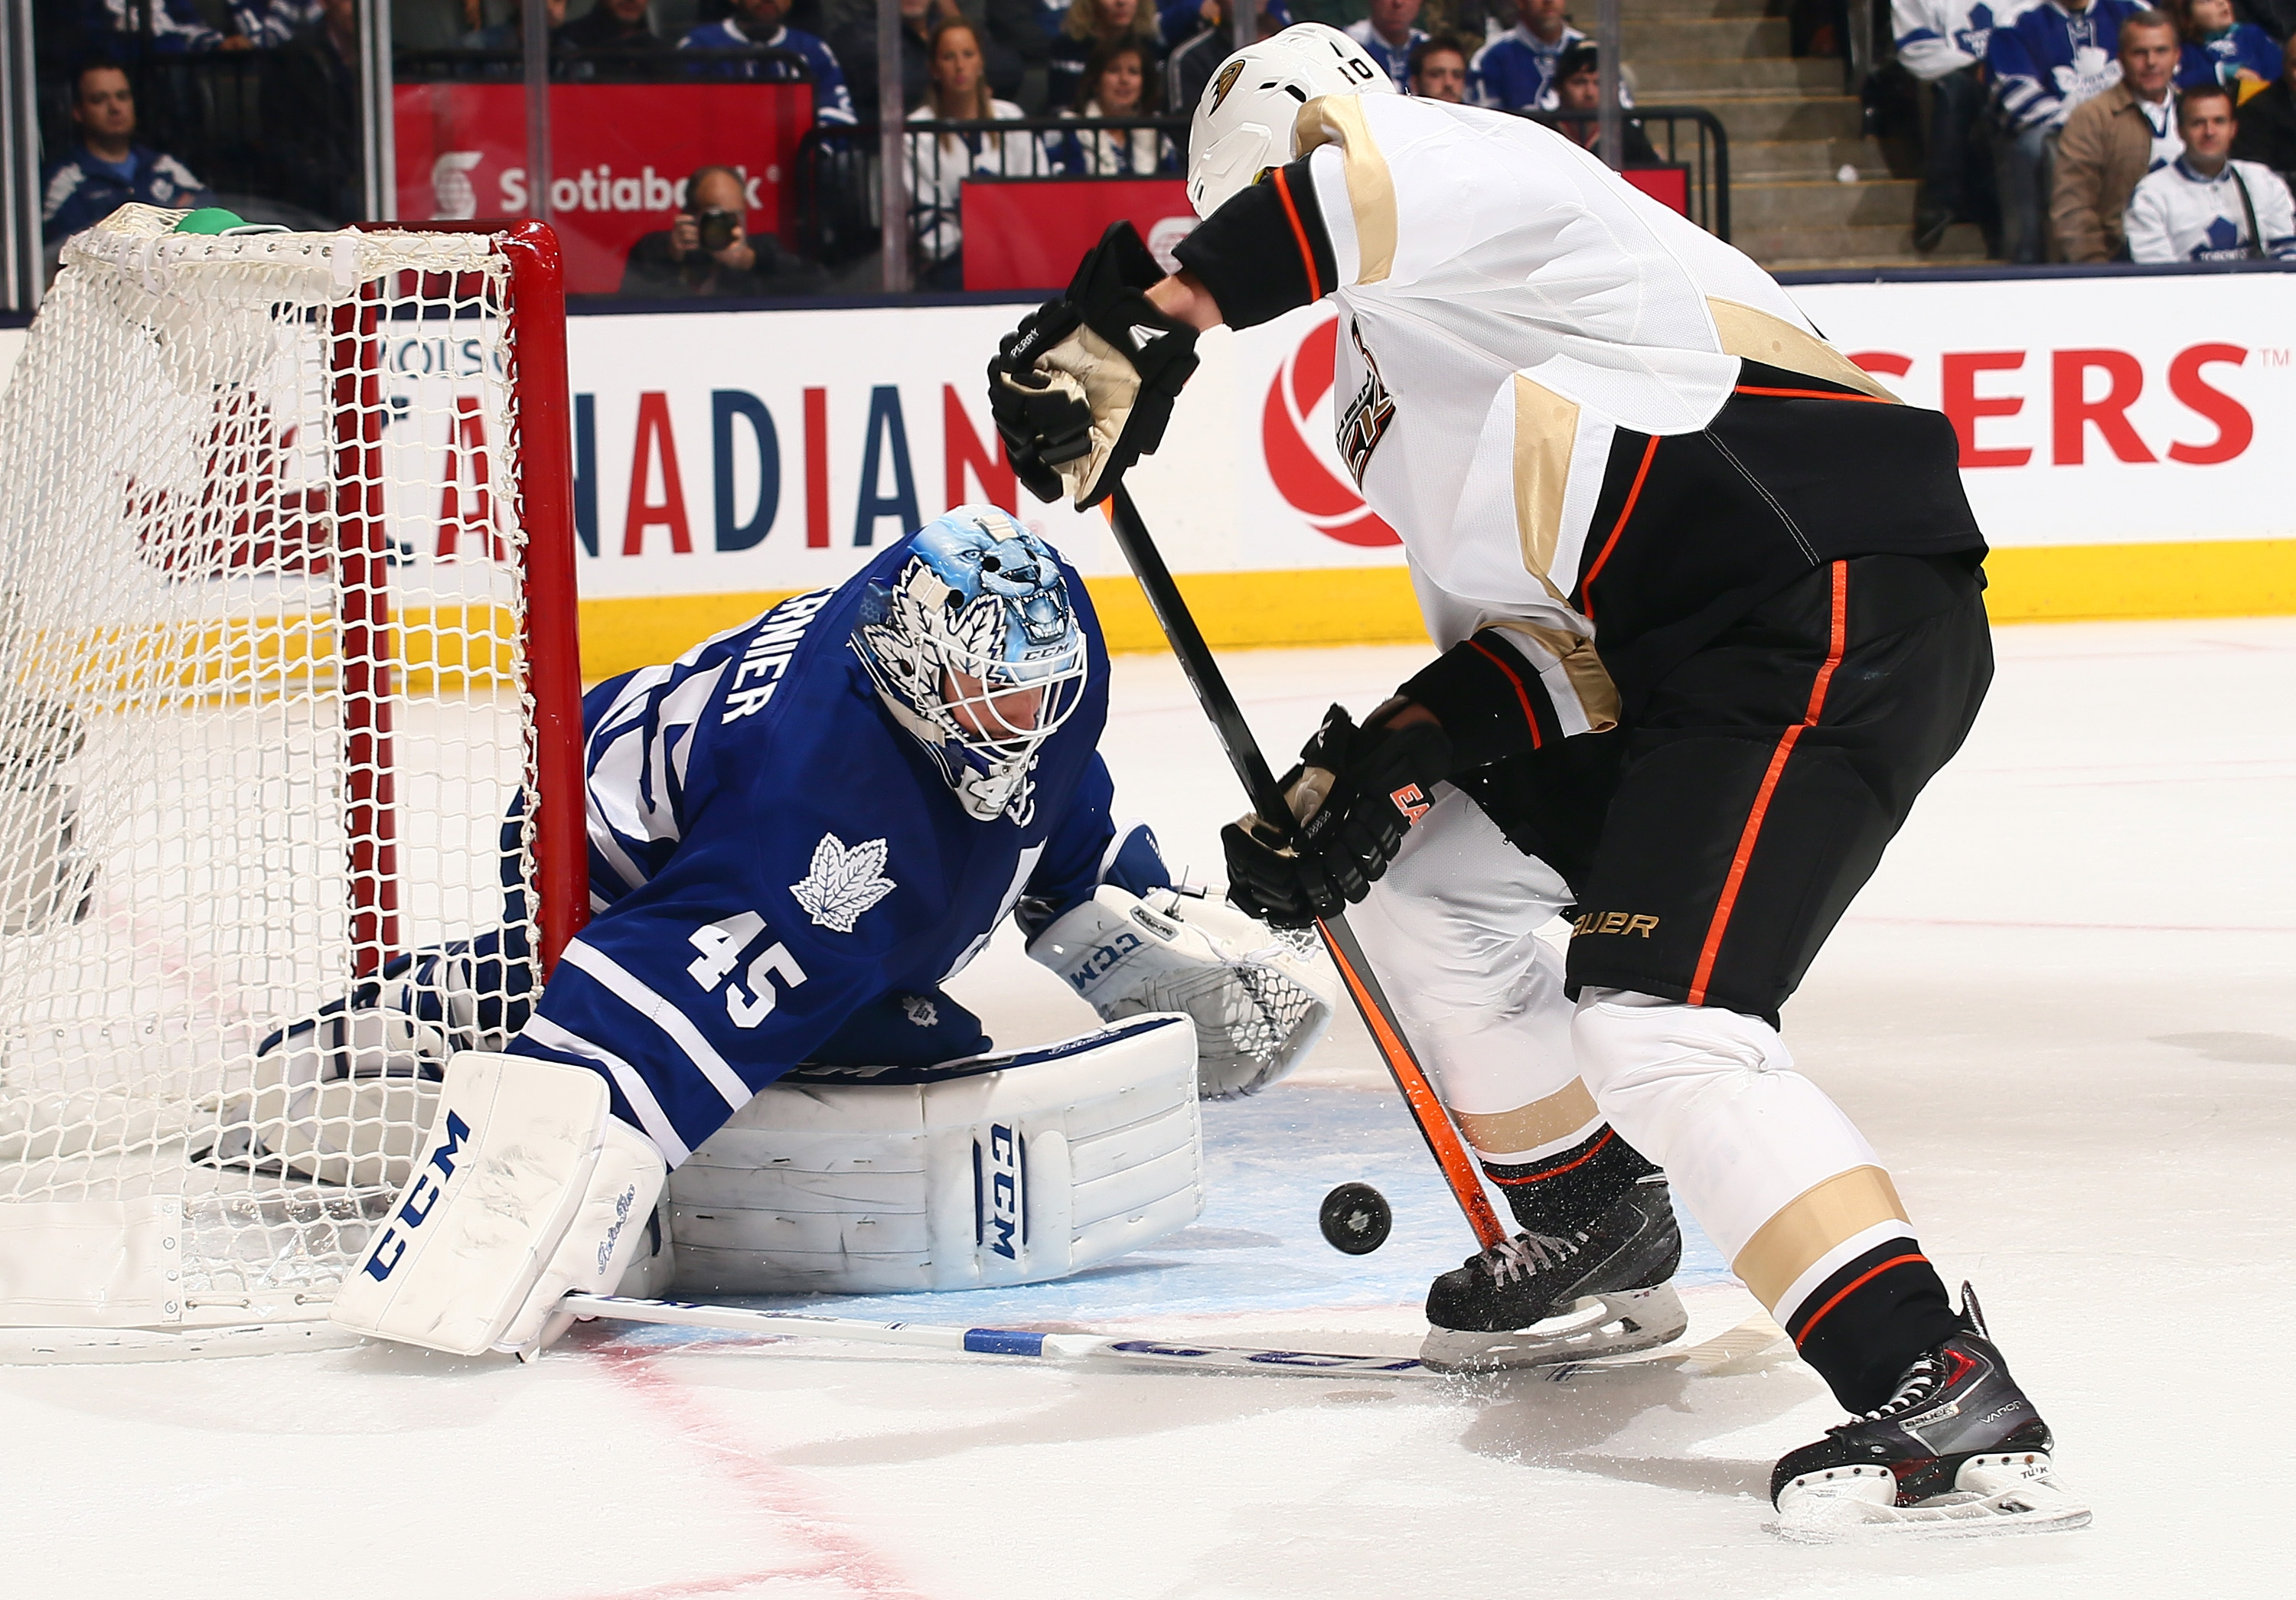 TORONTO, ON – OCTOBER 22: Jonathan Bernier #45 of the Toronto Maple Leafs stops Corey Perry #10 of the Anaheim Ducks during NHL action at the Air Canada Centre October 22, 2013 in Toronto, Ontario, Canada.  (Photo by Abelimages/Getty Images)